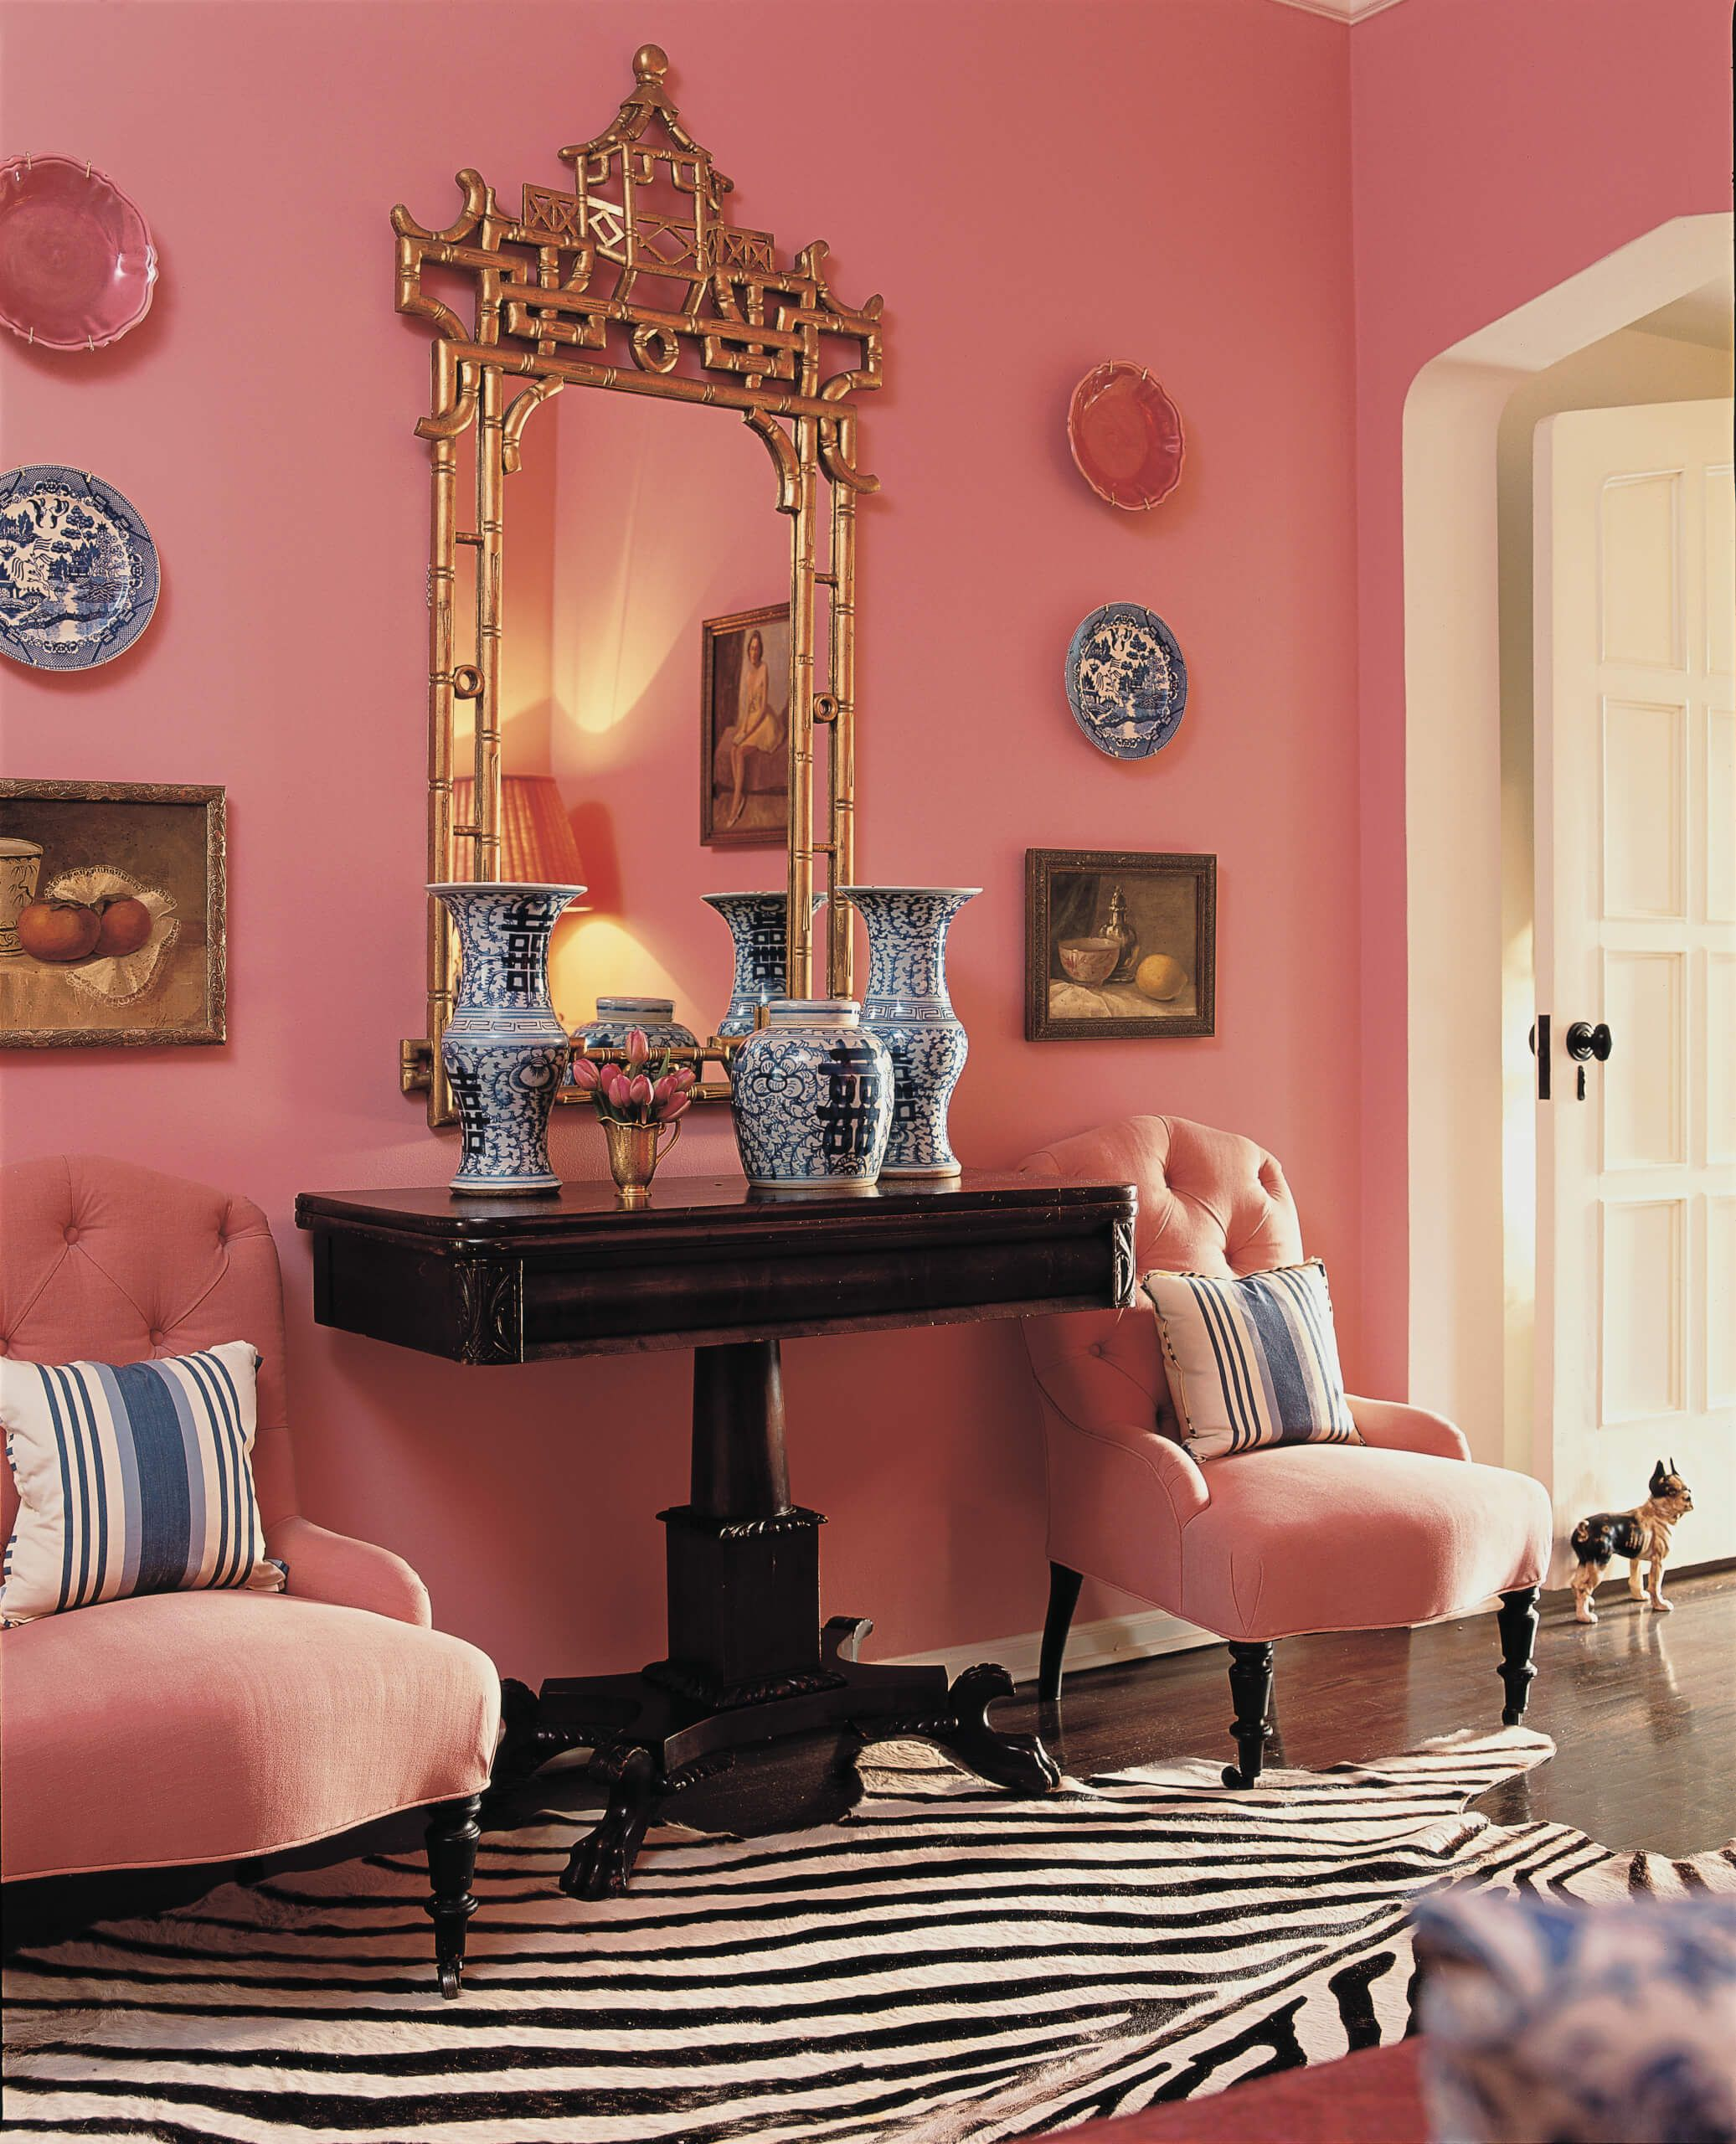 Eclectic Pink And Zebra Print Wes Anderson Inspired Hallway By Mary Mcdonald Nonagon Style Pink Dining Rooms Pink Living Room Romantic Style Living Room